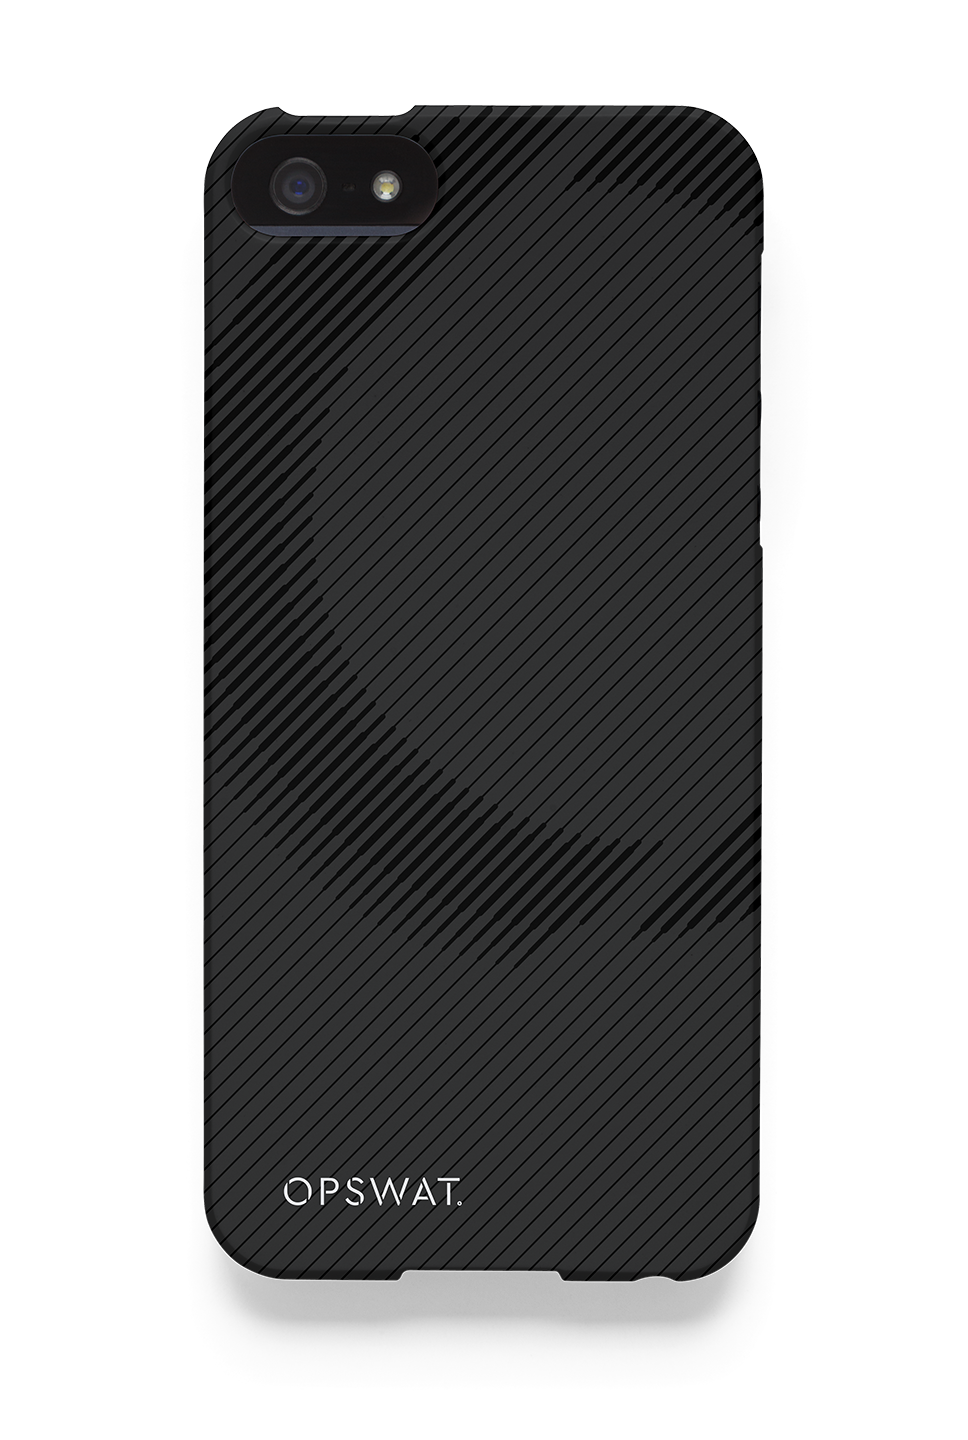 OPSWAT iPhone case